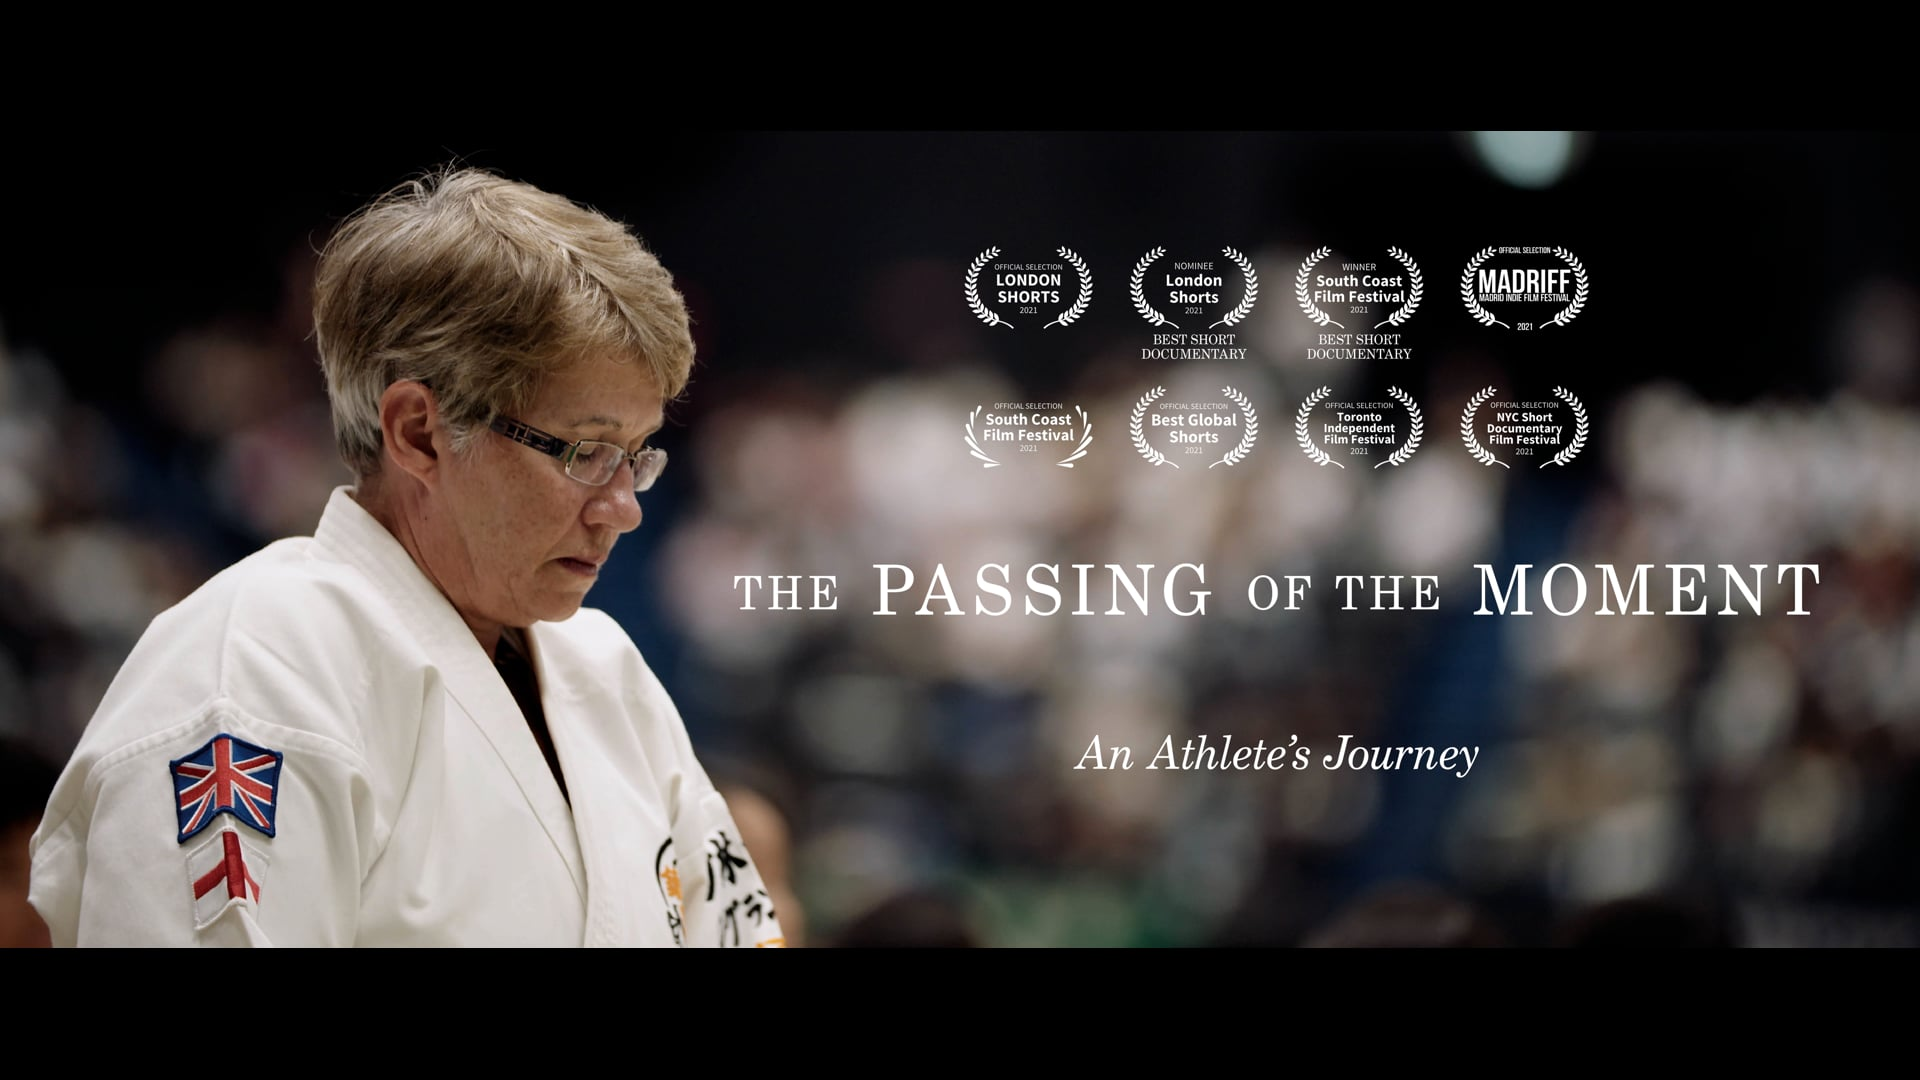 The Passing of the Moment: An Athlete's Journey